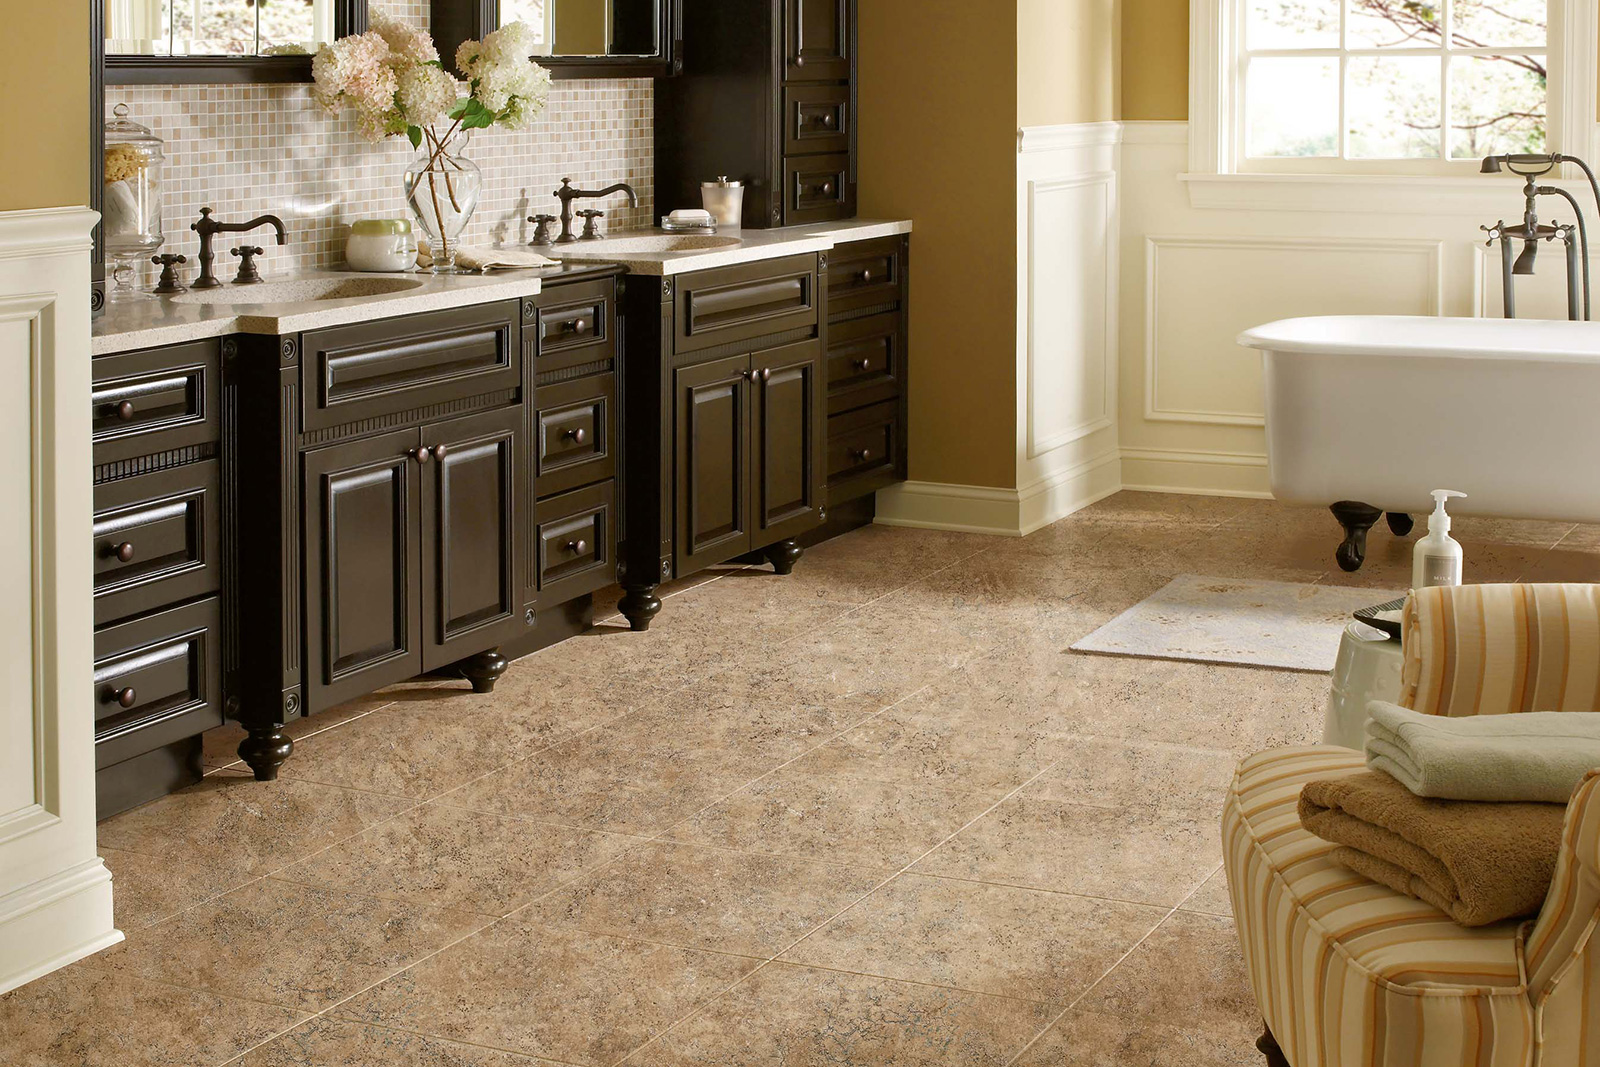 Is Cork Flooring Good For Kitchen Bathroom Flooring Bathroom Flooring Options Houselogic Bathrooms